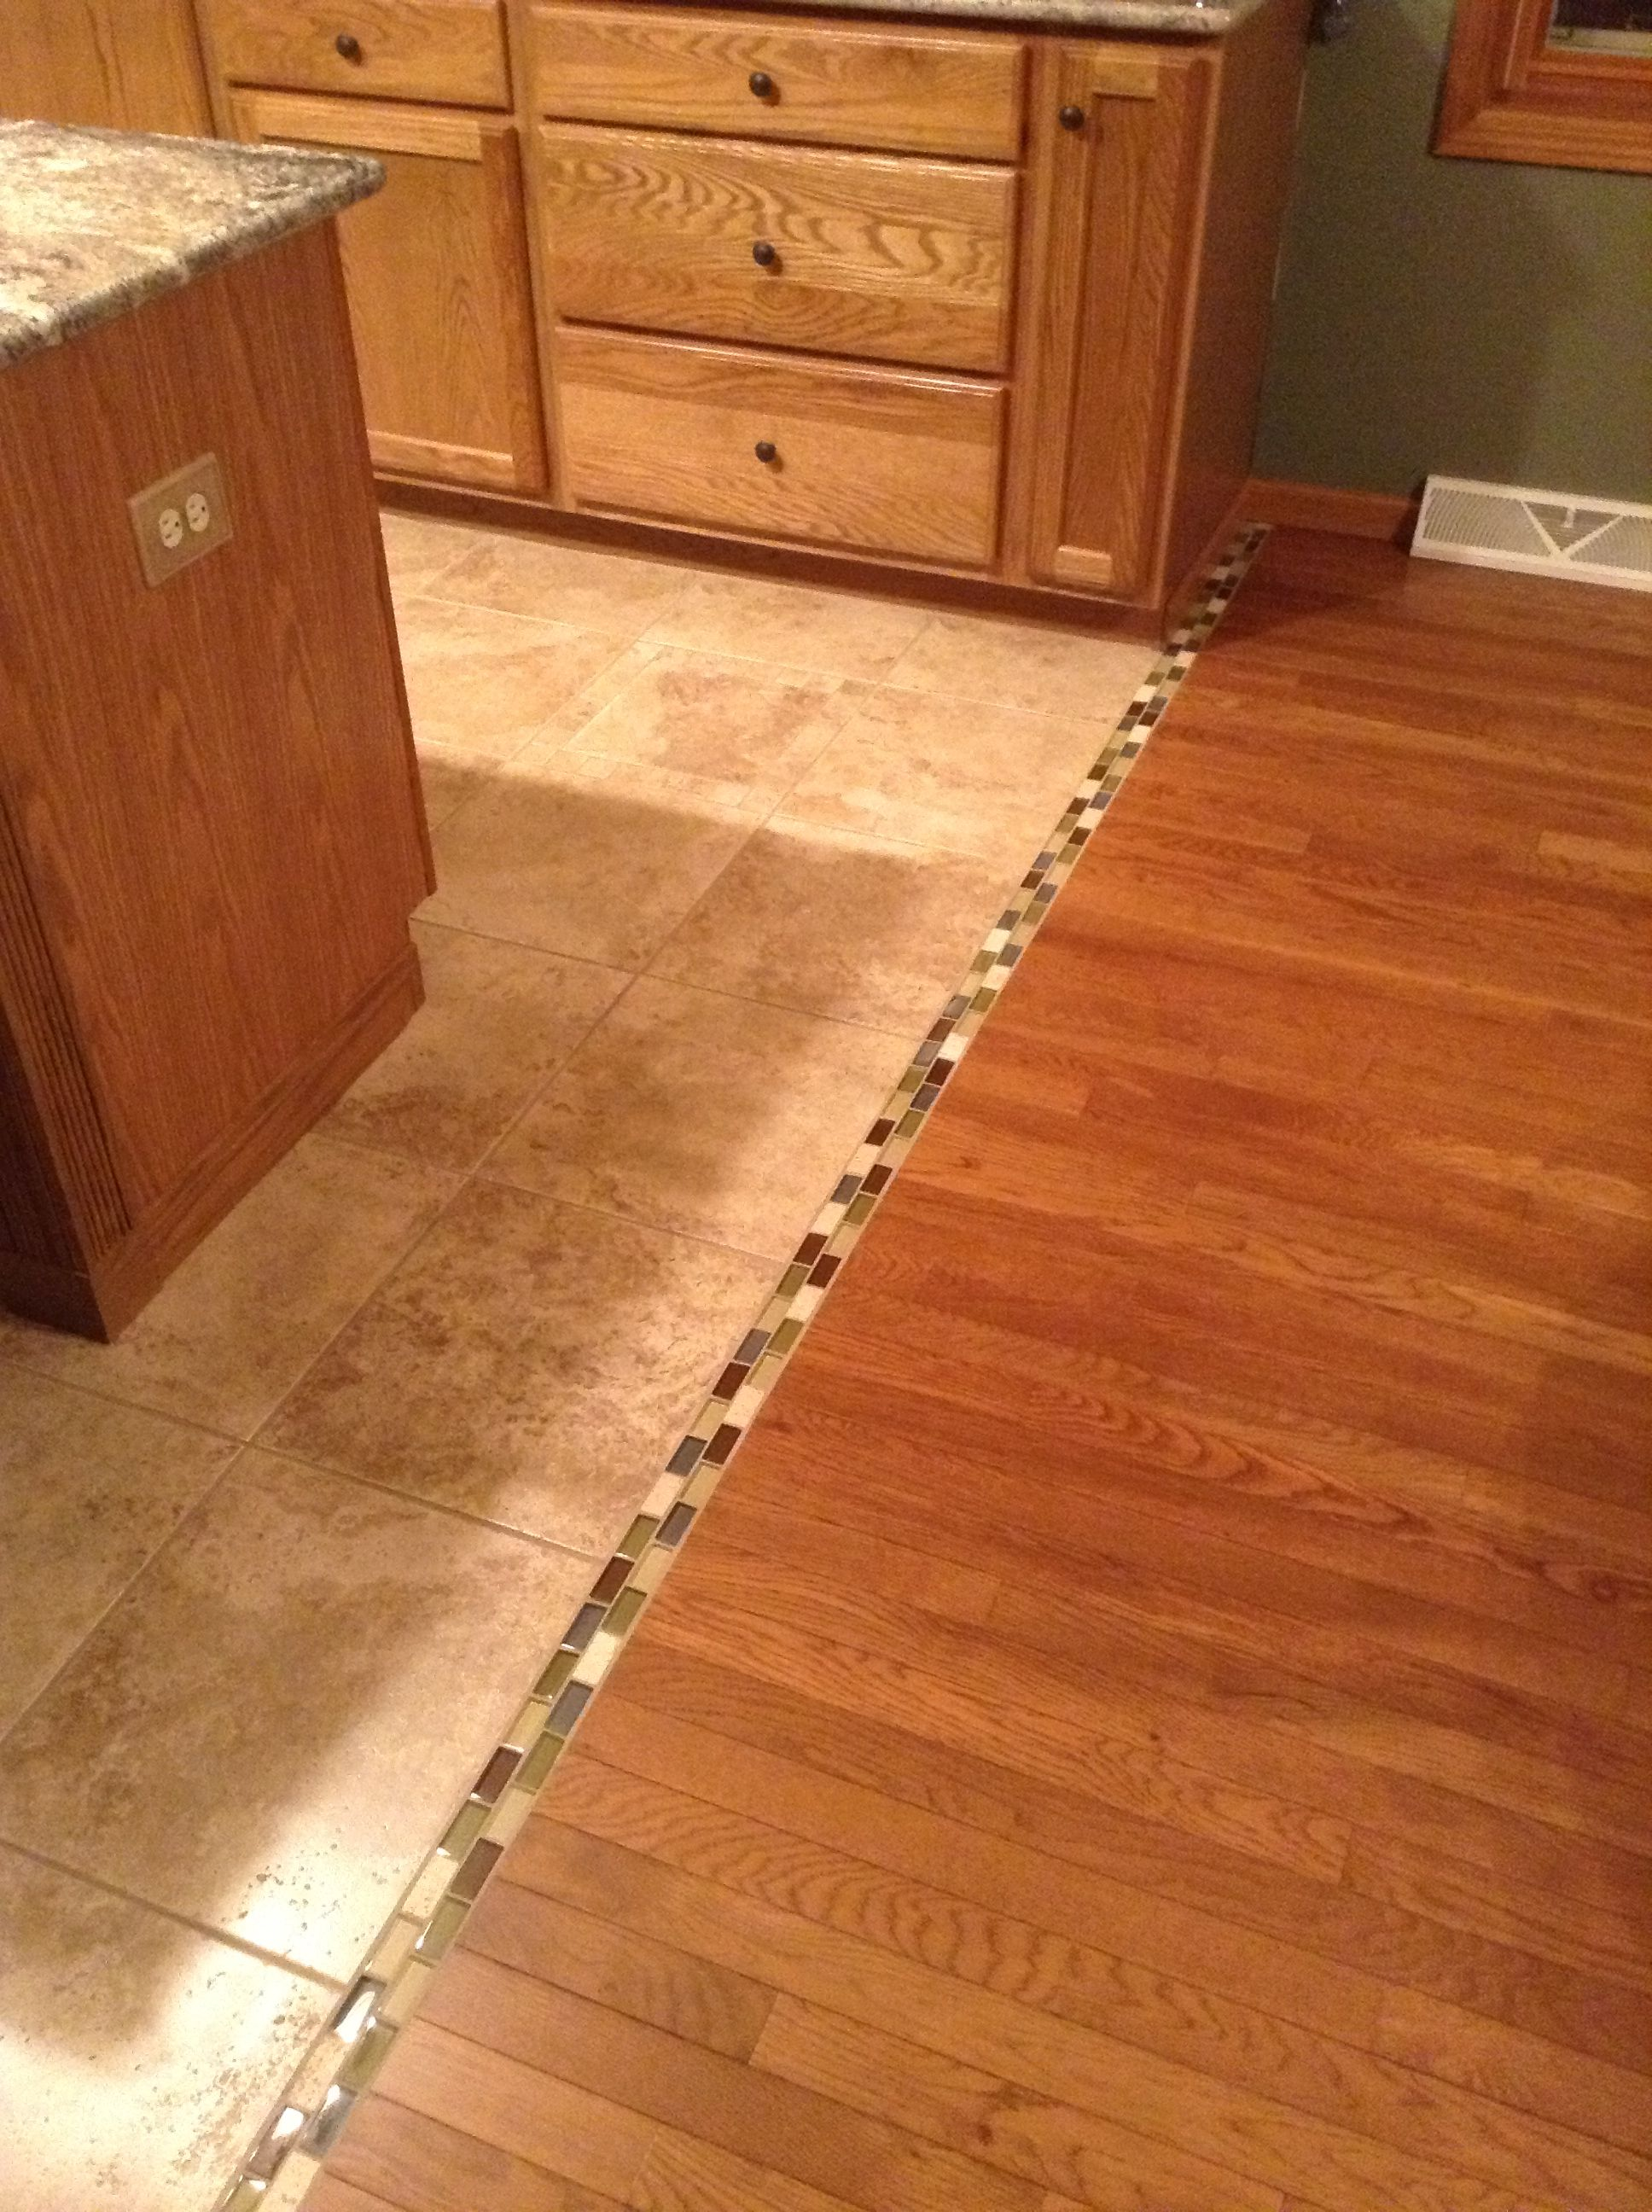 Transition between hardwood and tile floor we should do for Ceramic flooring